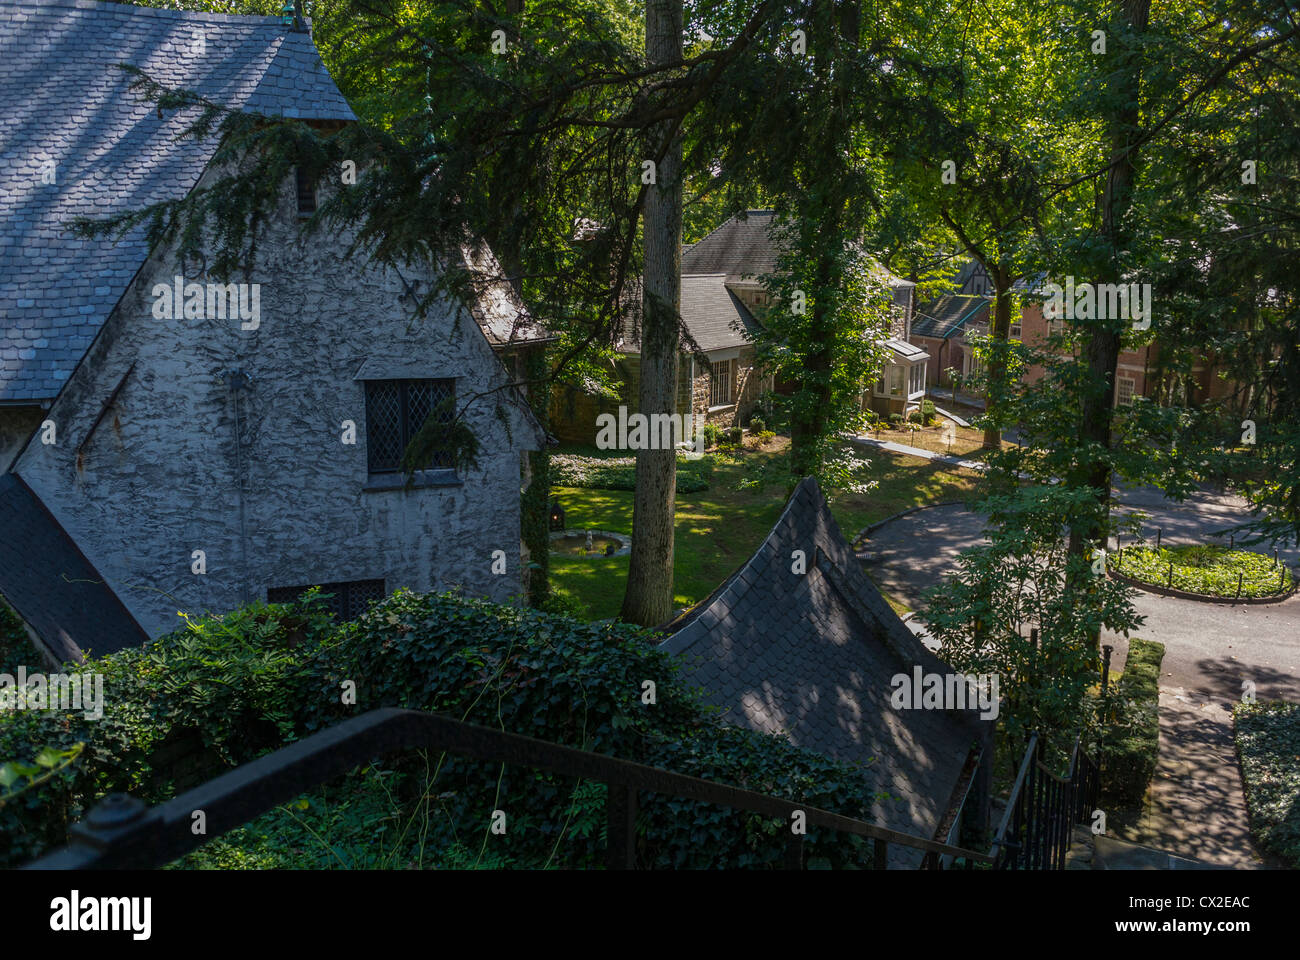 Bronx, New York, NY, USA, Fieldston Historic District, Garden, Street Scene in Exclusive Private Neighborhood 'Wave - Stock Image